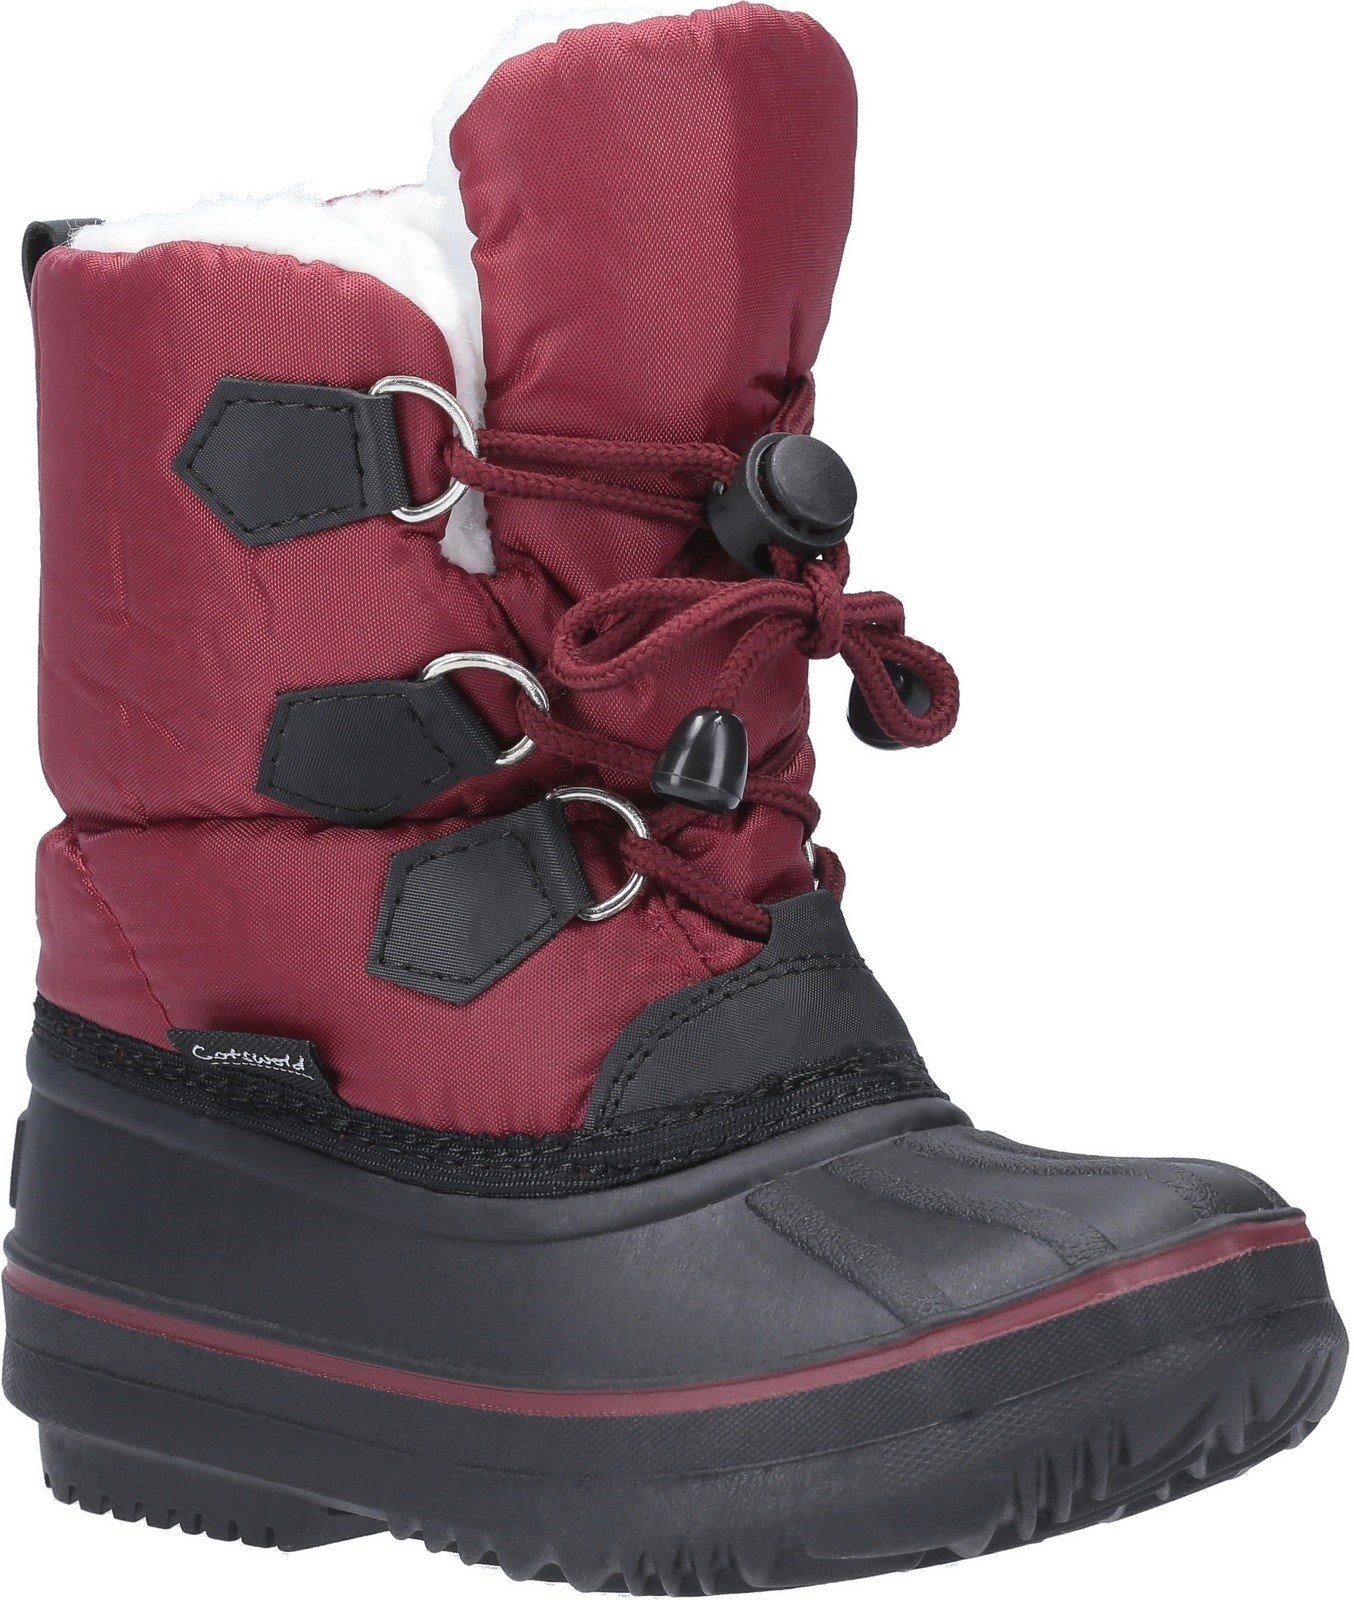 Cotswold Unisex Explorer Bungee Lace Snow Boot Red 29289 - Red 10